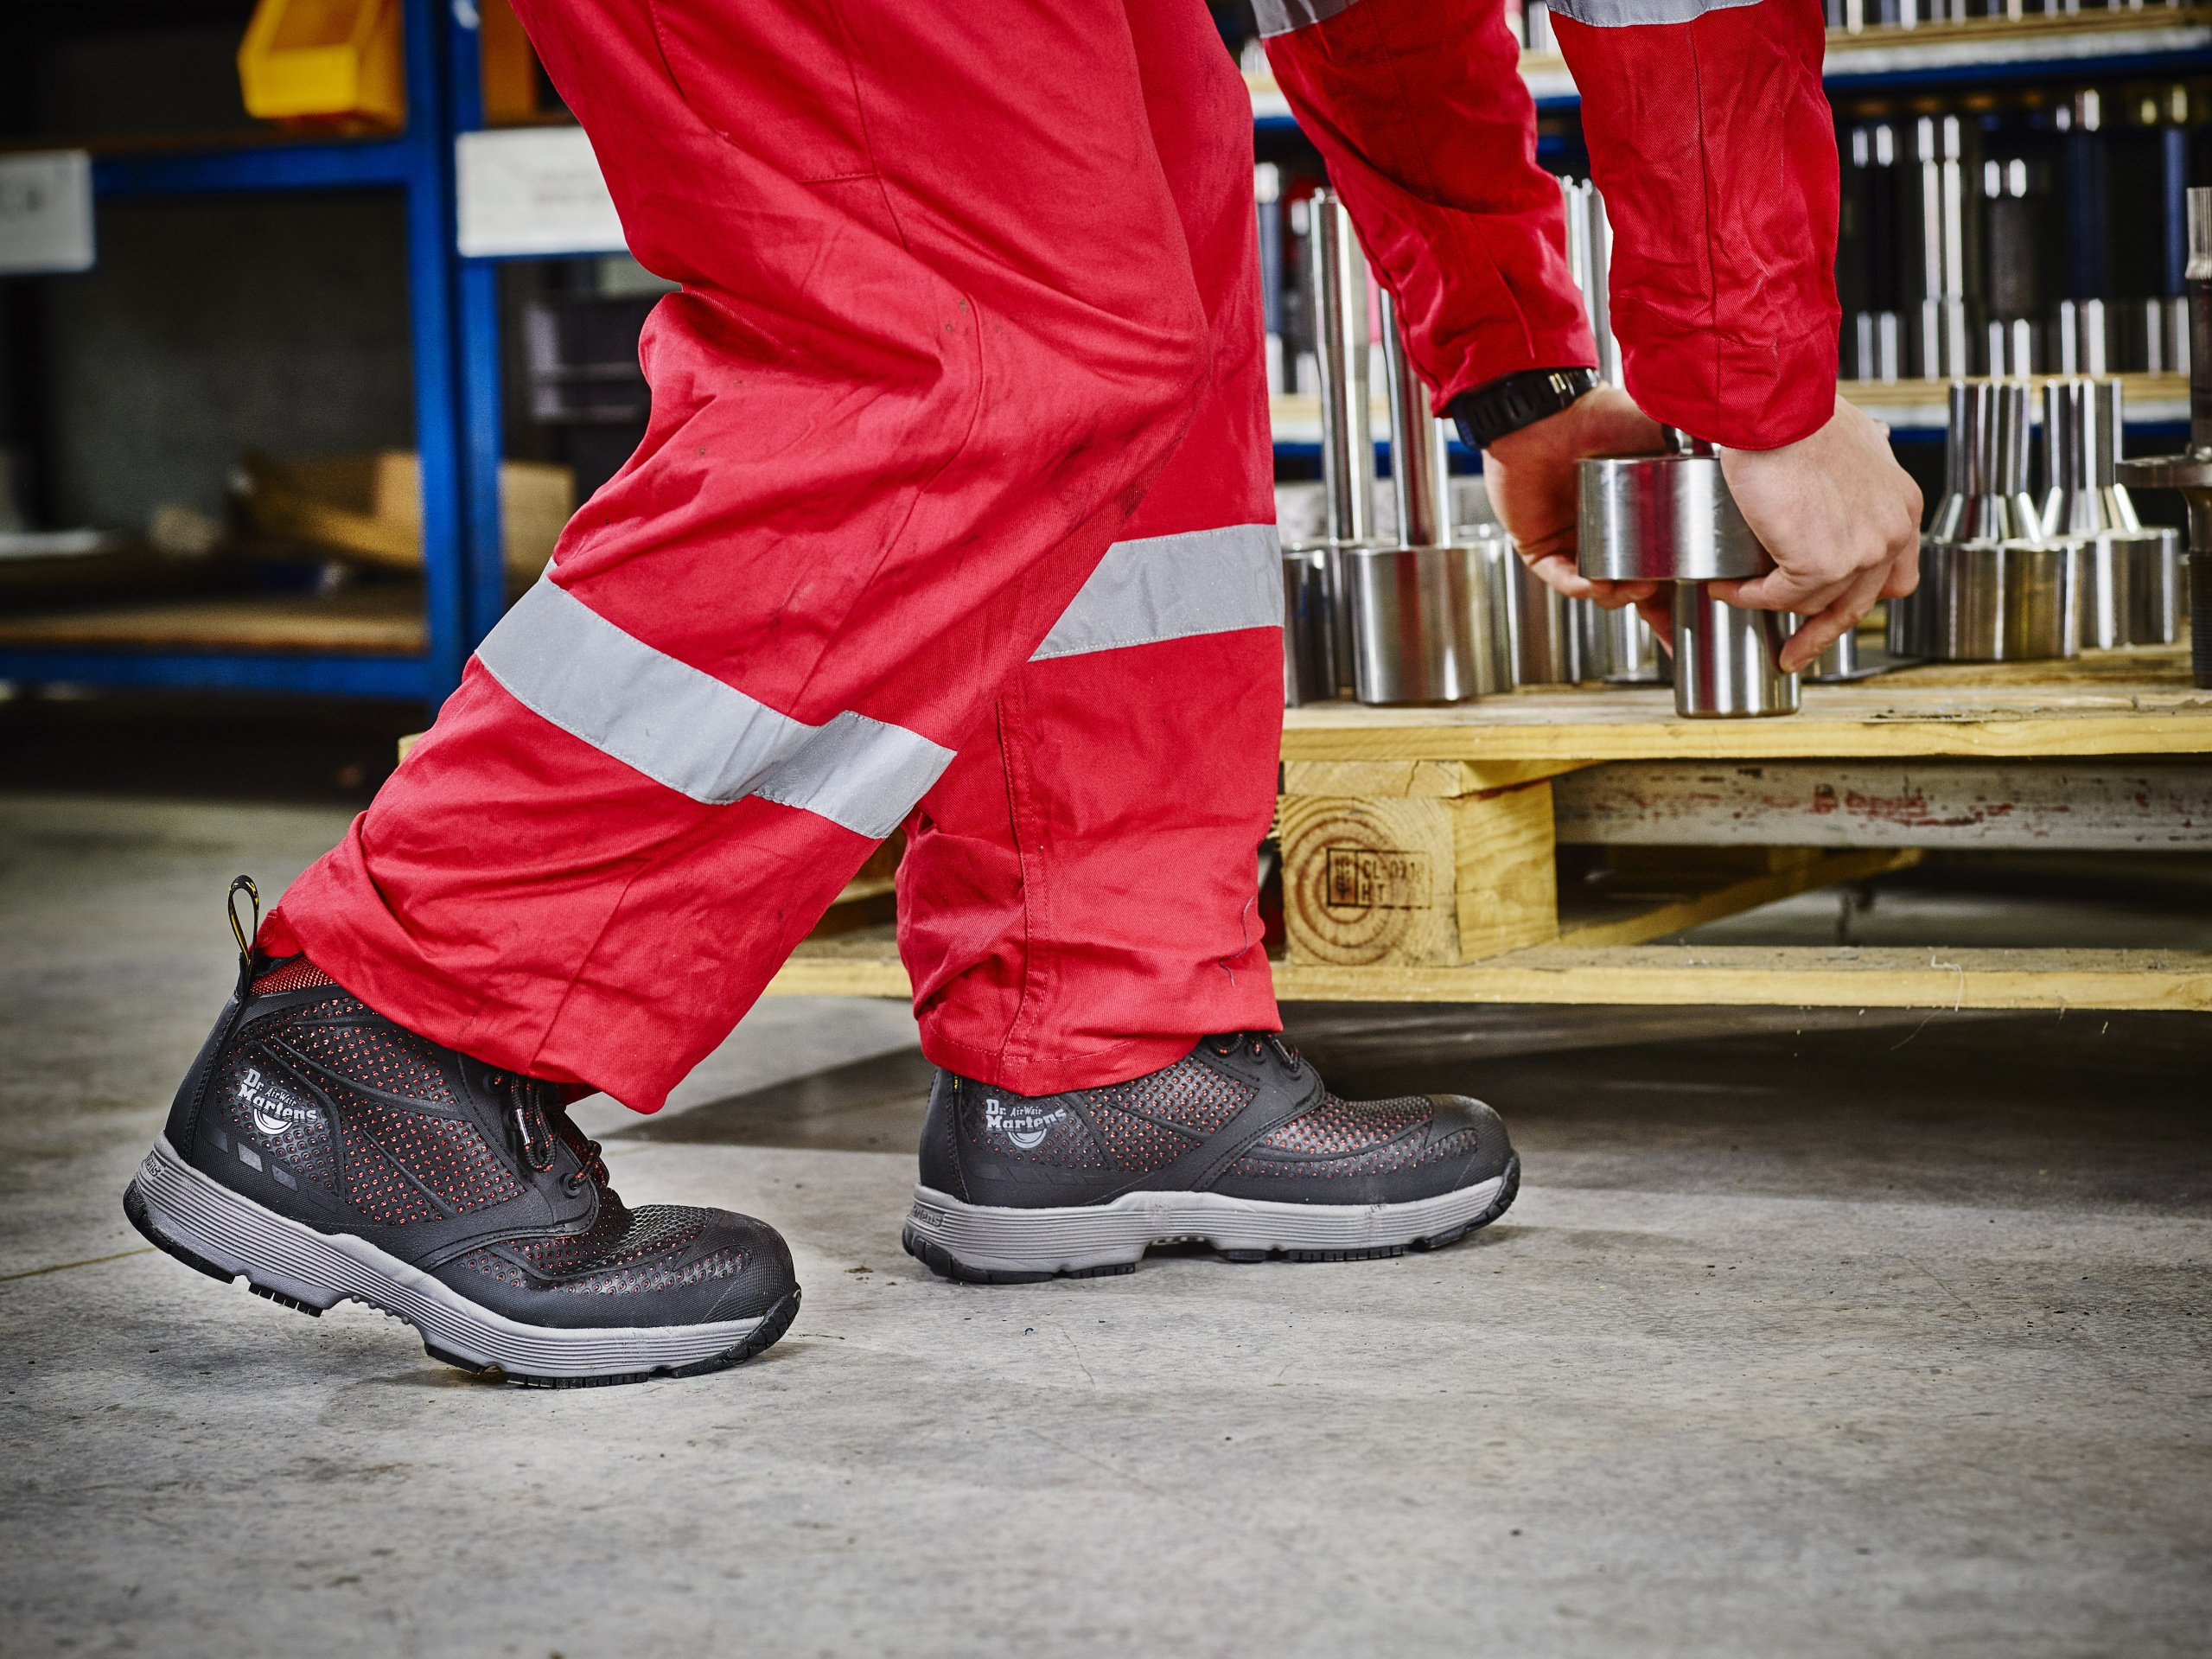 How Dr. Martens is challenging the perceptions of safety footwear 9ac653caac28